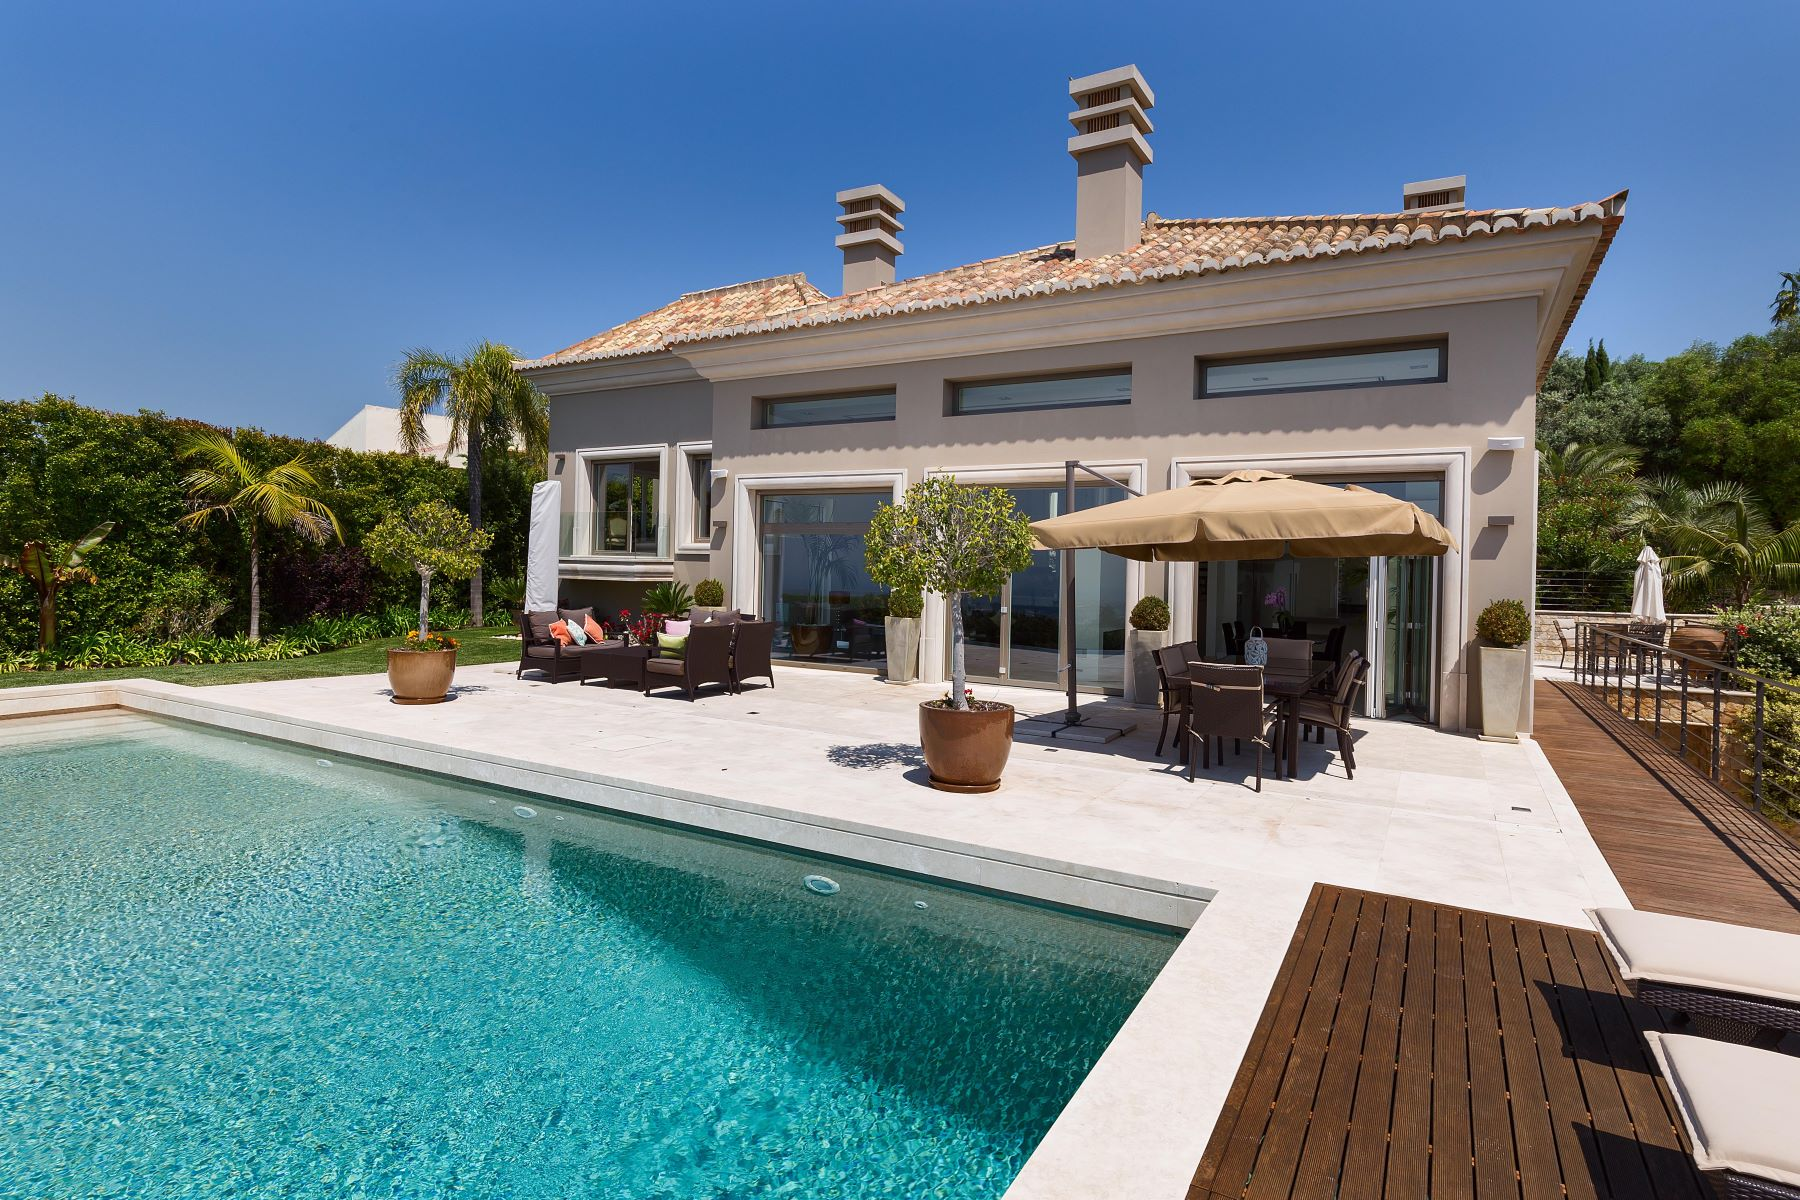 Single Family Home for Sale at Detached house, 5 bedrooms, for Sale Faro, Algarve, Portugal